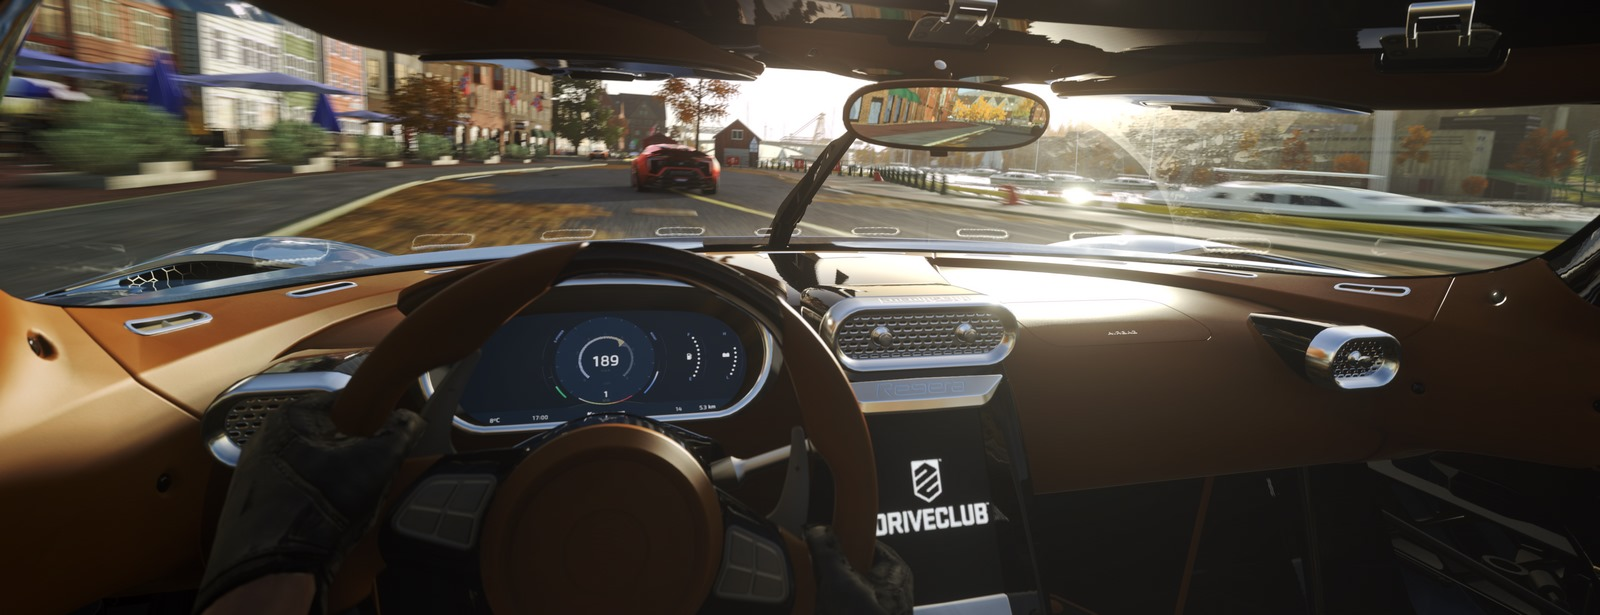 driveclub-vr-screen-playstation-vr-sony-ps4 (4)